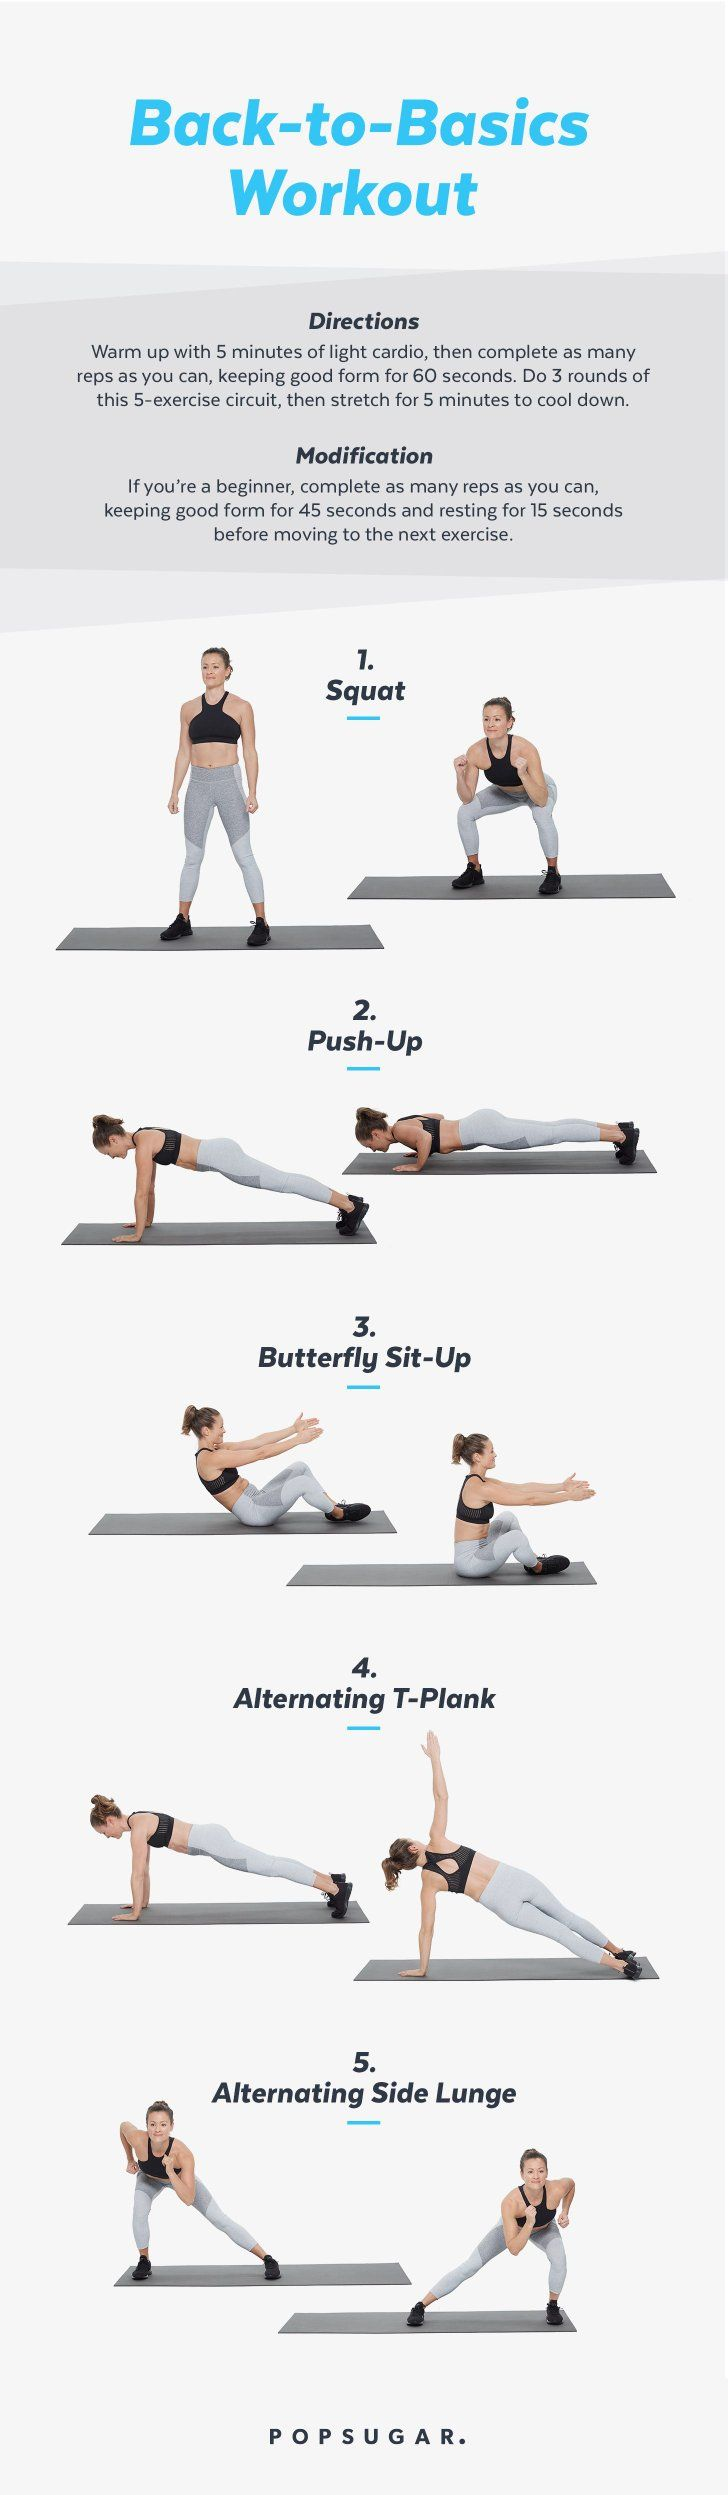 Jump-Start Your Fitness Life With This Back-to-Basics Workout @popsugarfitness @shopstylecollective #psjumpstart #sscollective